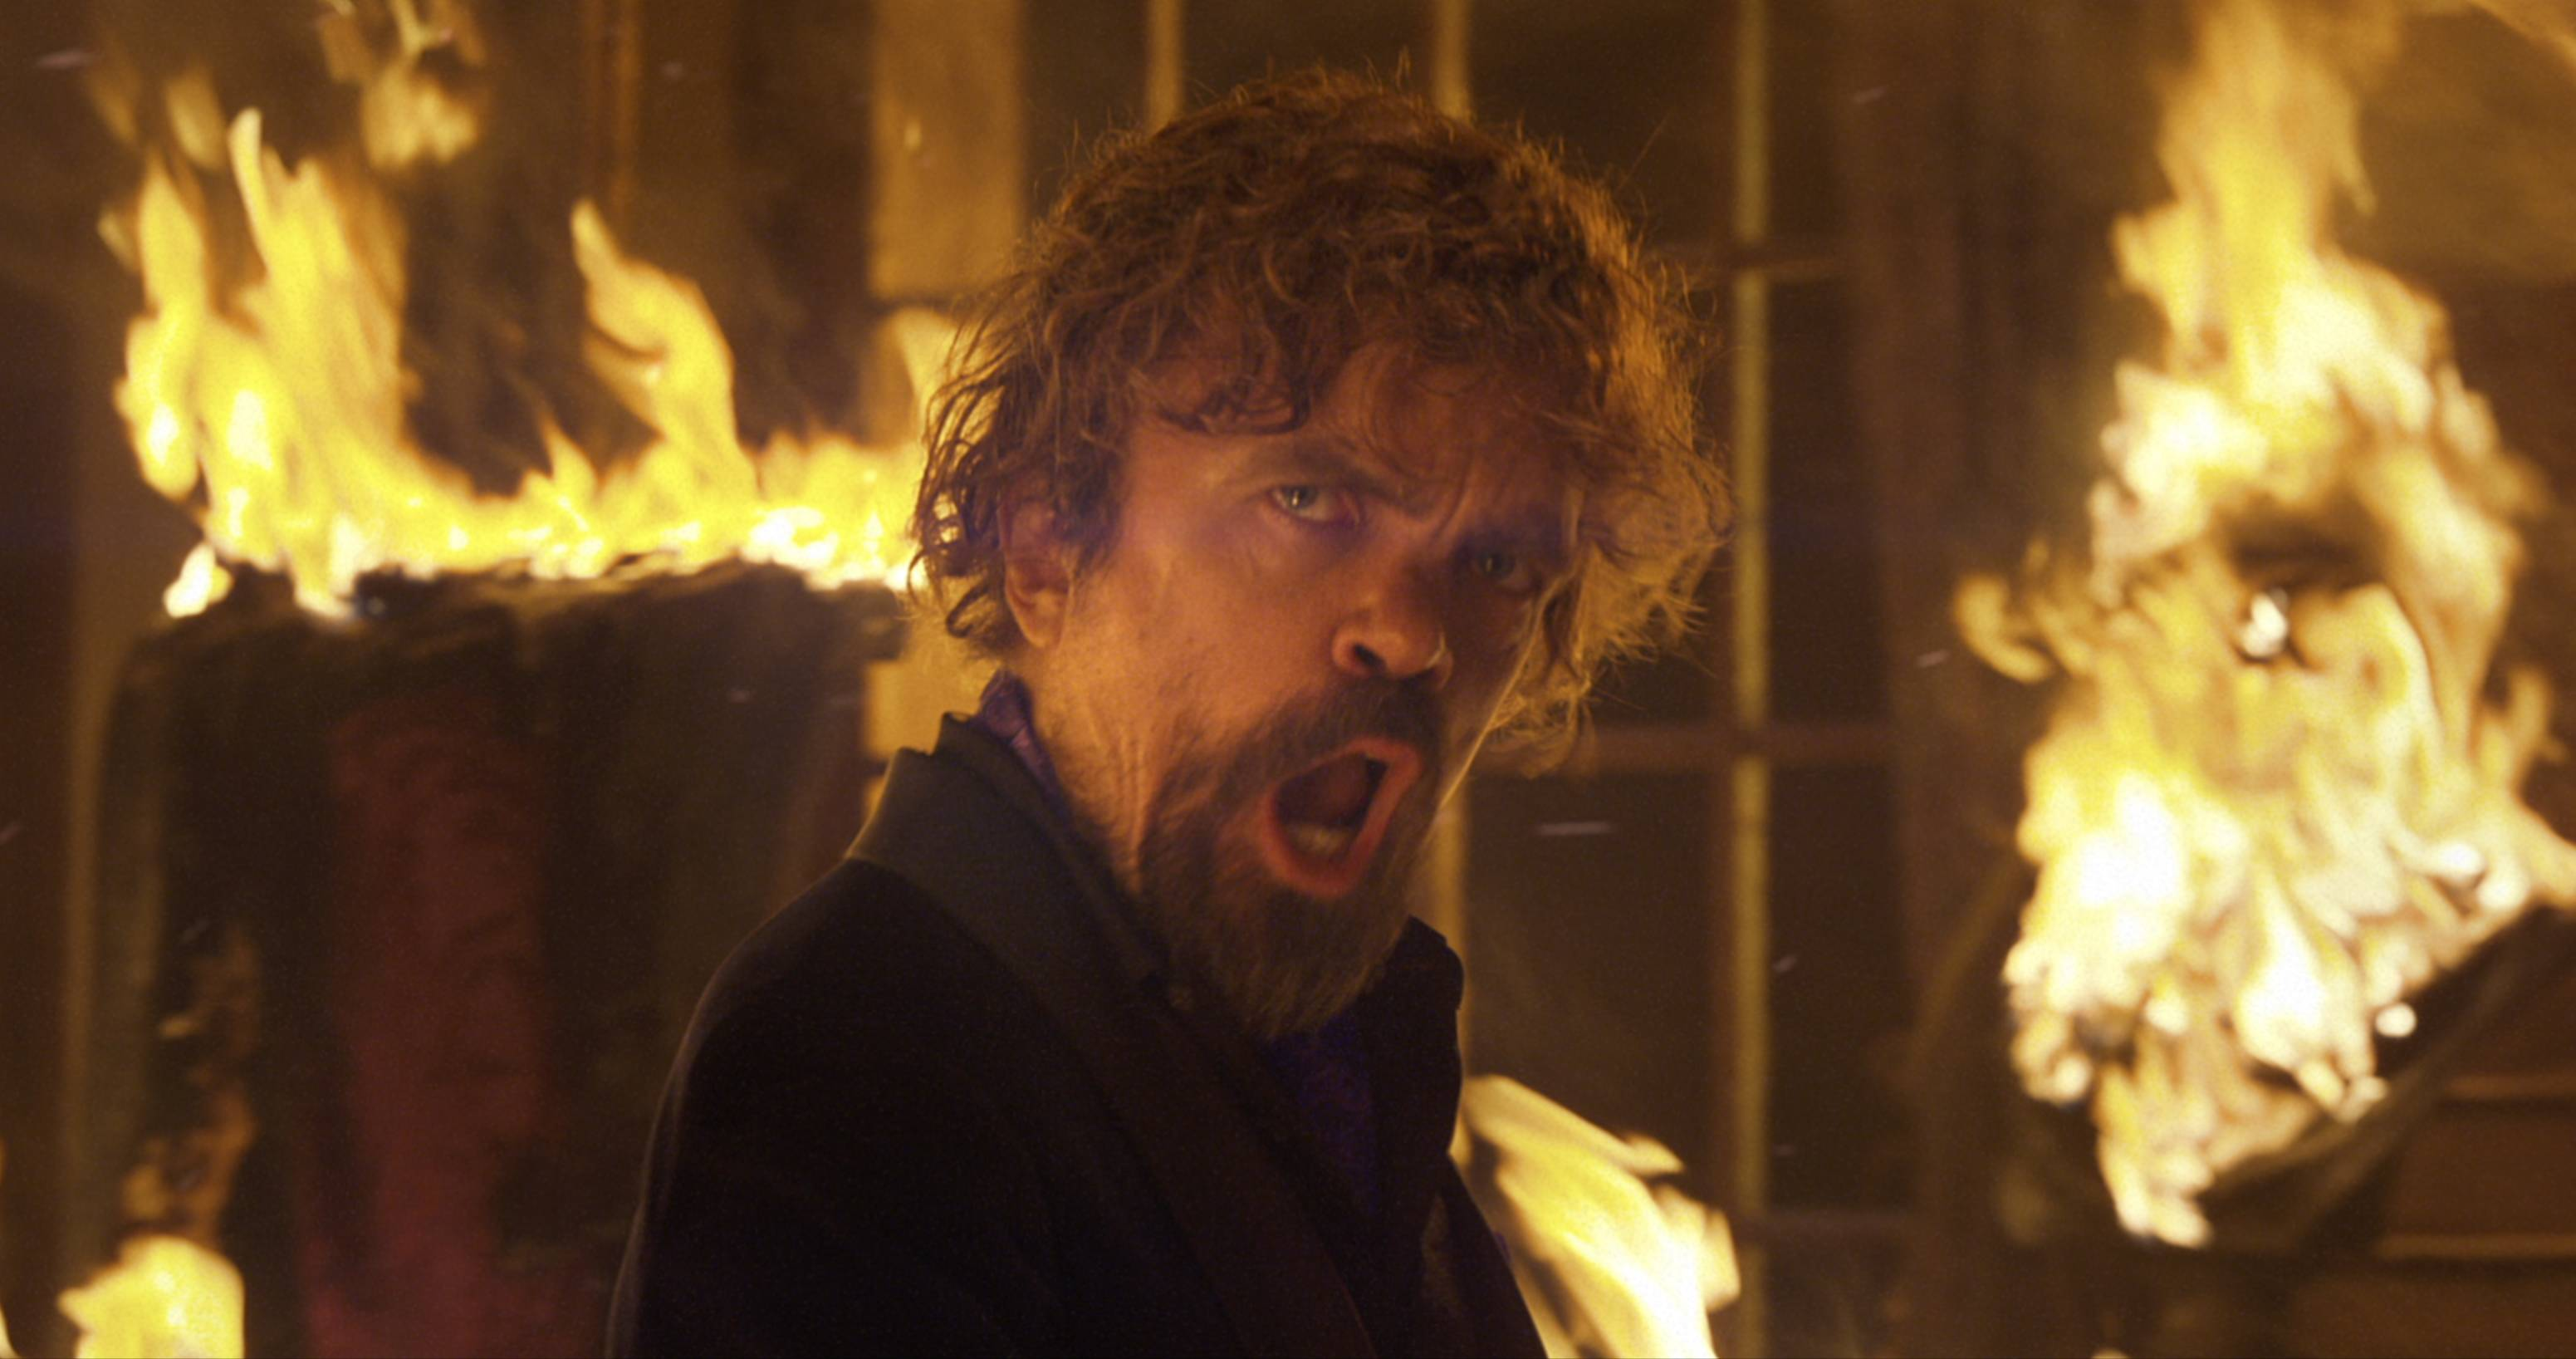 Peter Dinklage stars in the Doritos Blaze Super Bowl spot.